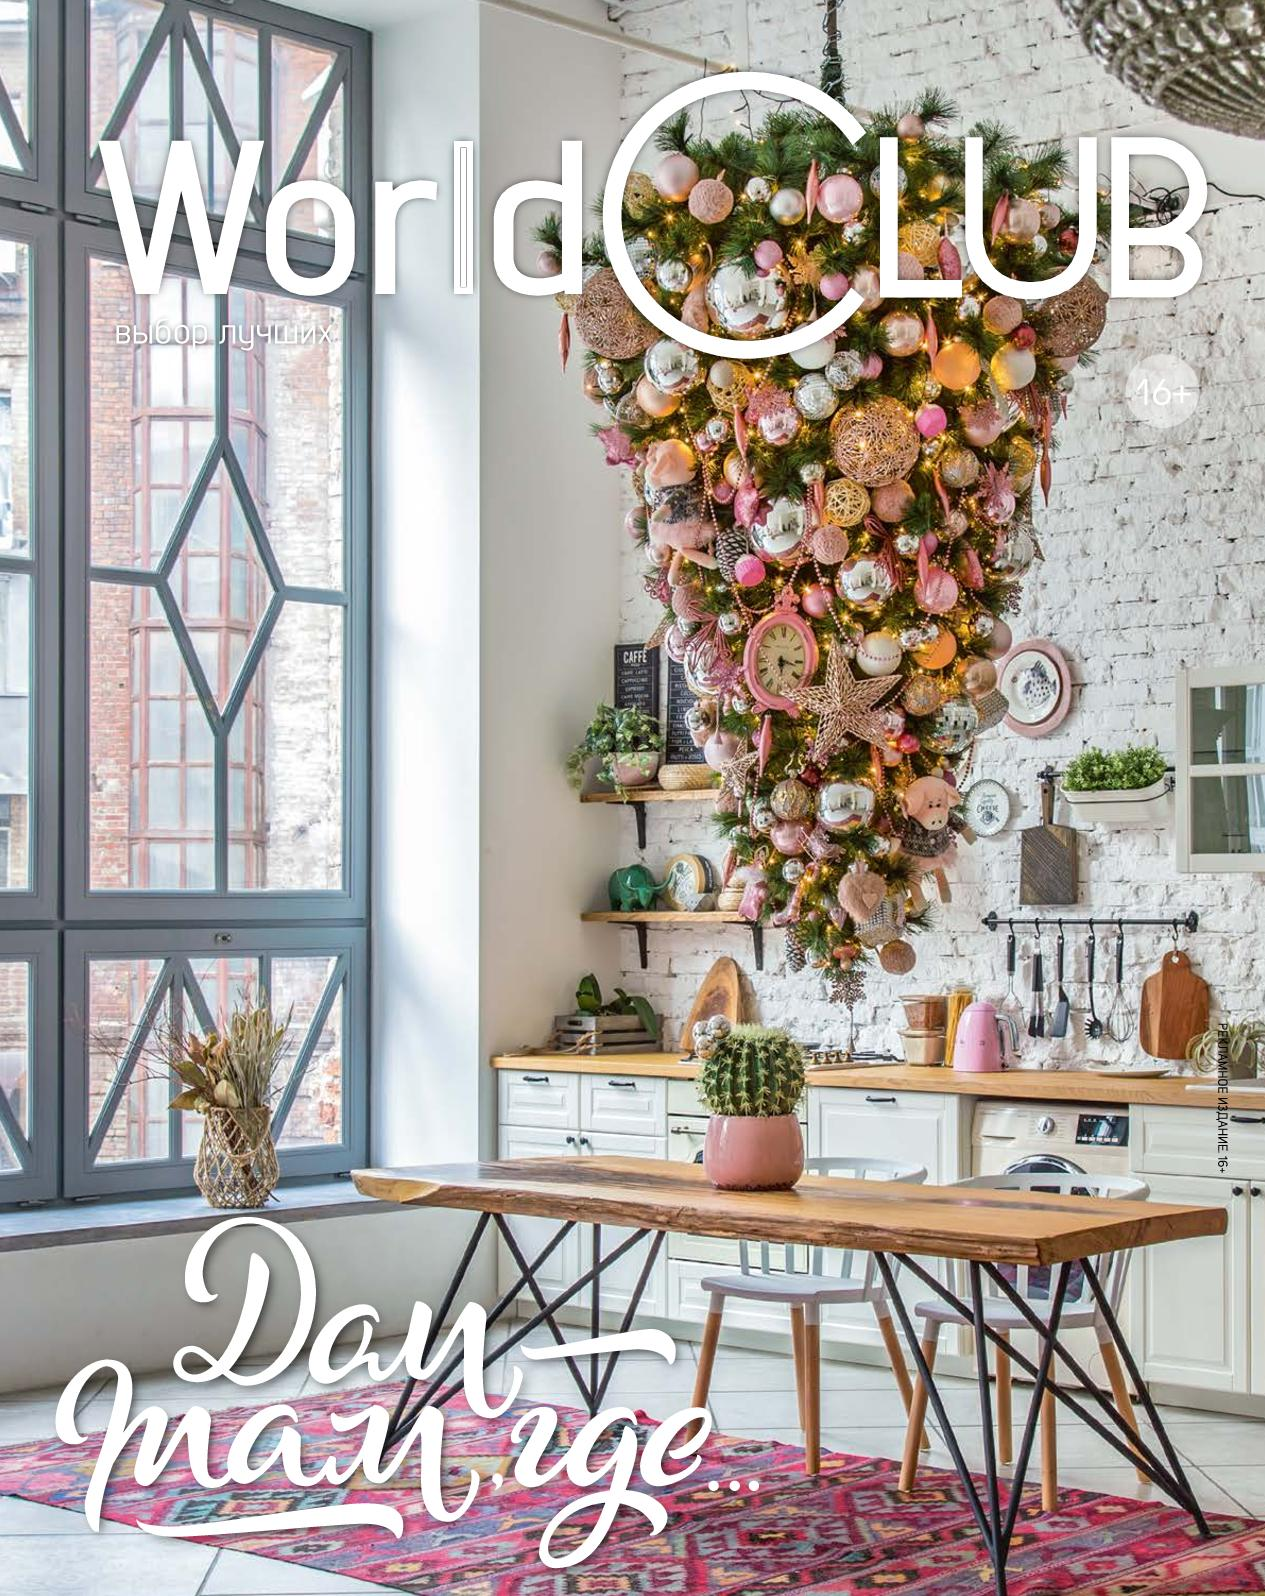 Calaméo - World Club Magazine Winter 2018 c205776d5f984